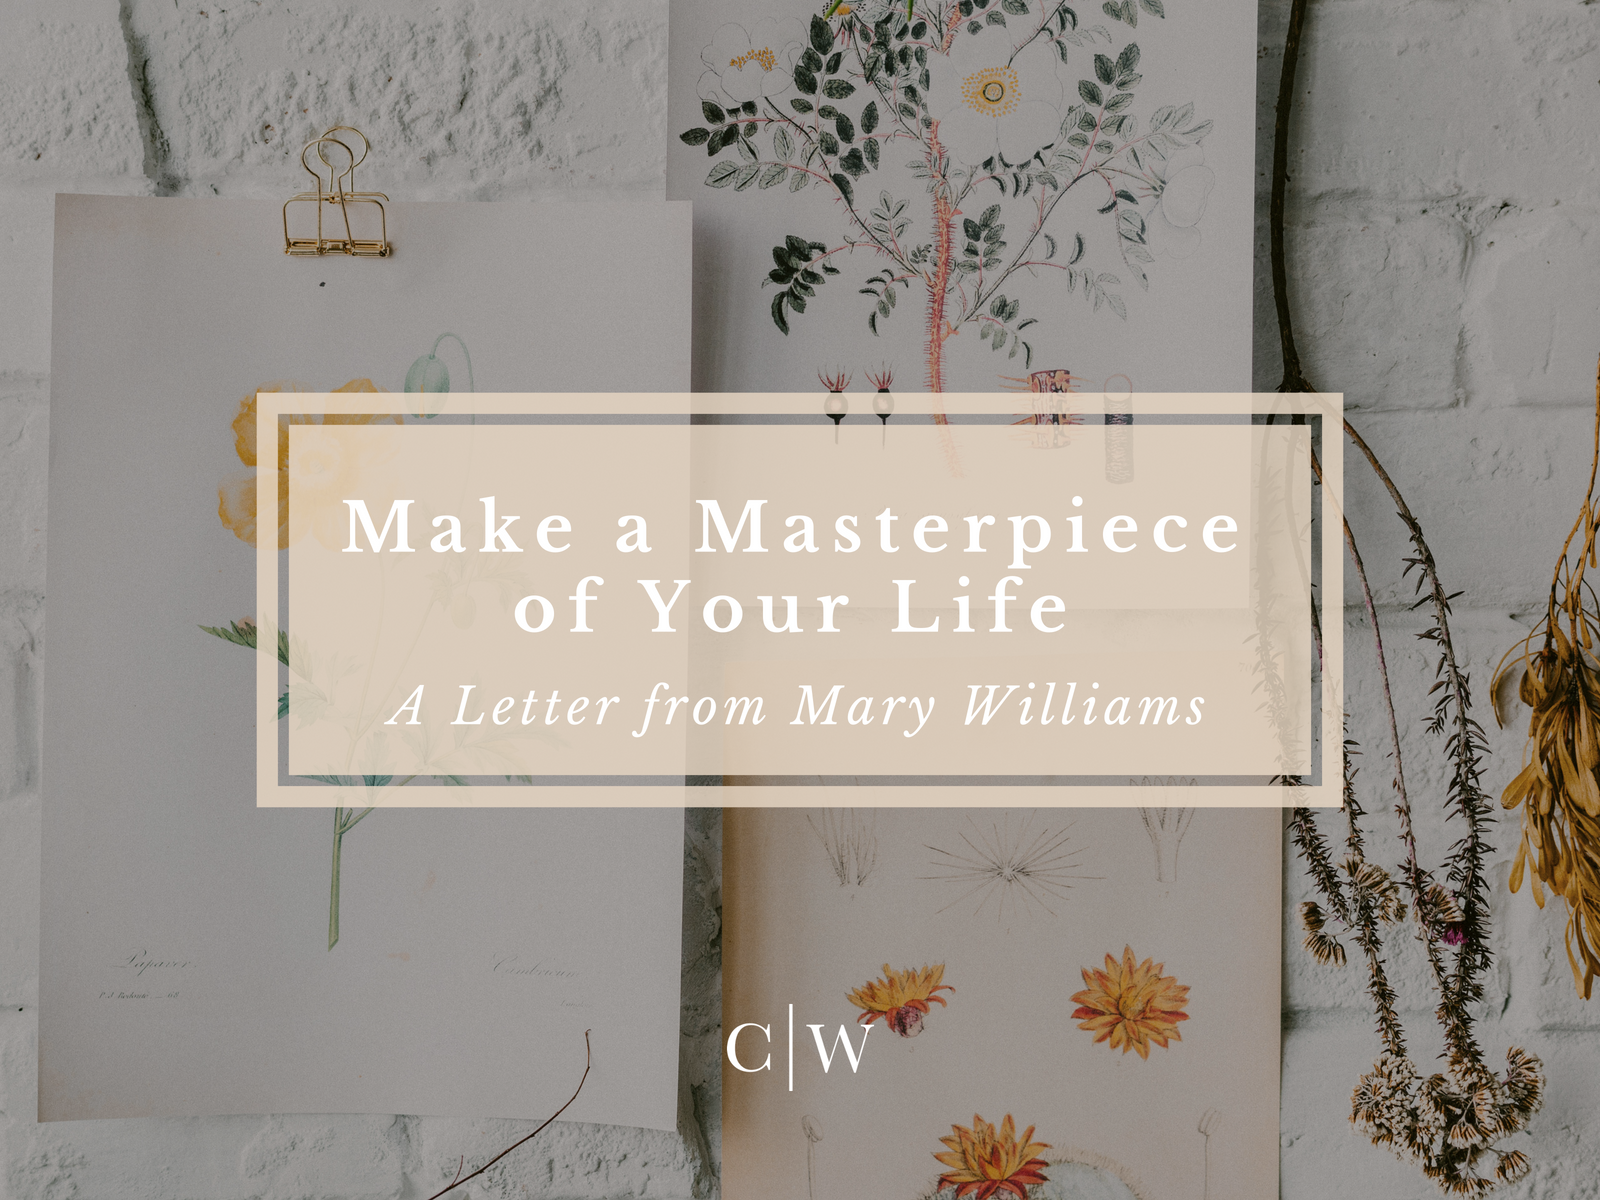 Make a Masterpiece of Your Life Mary Williams